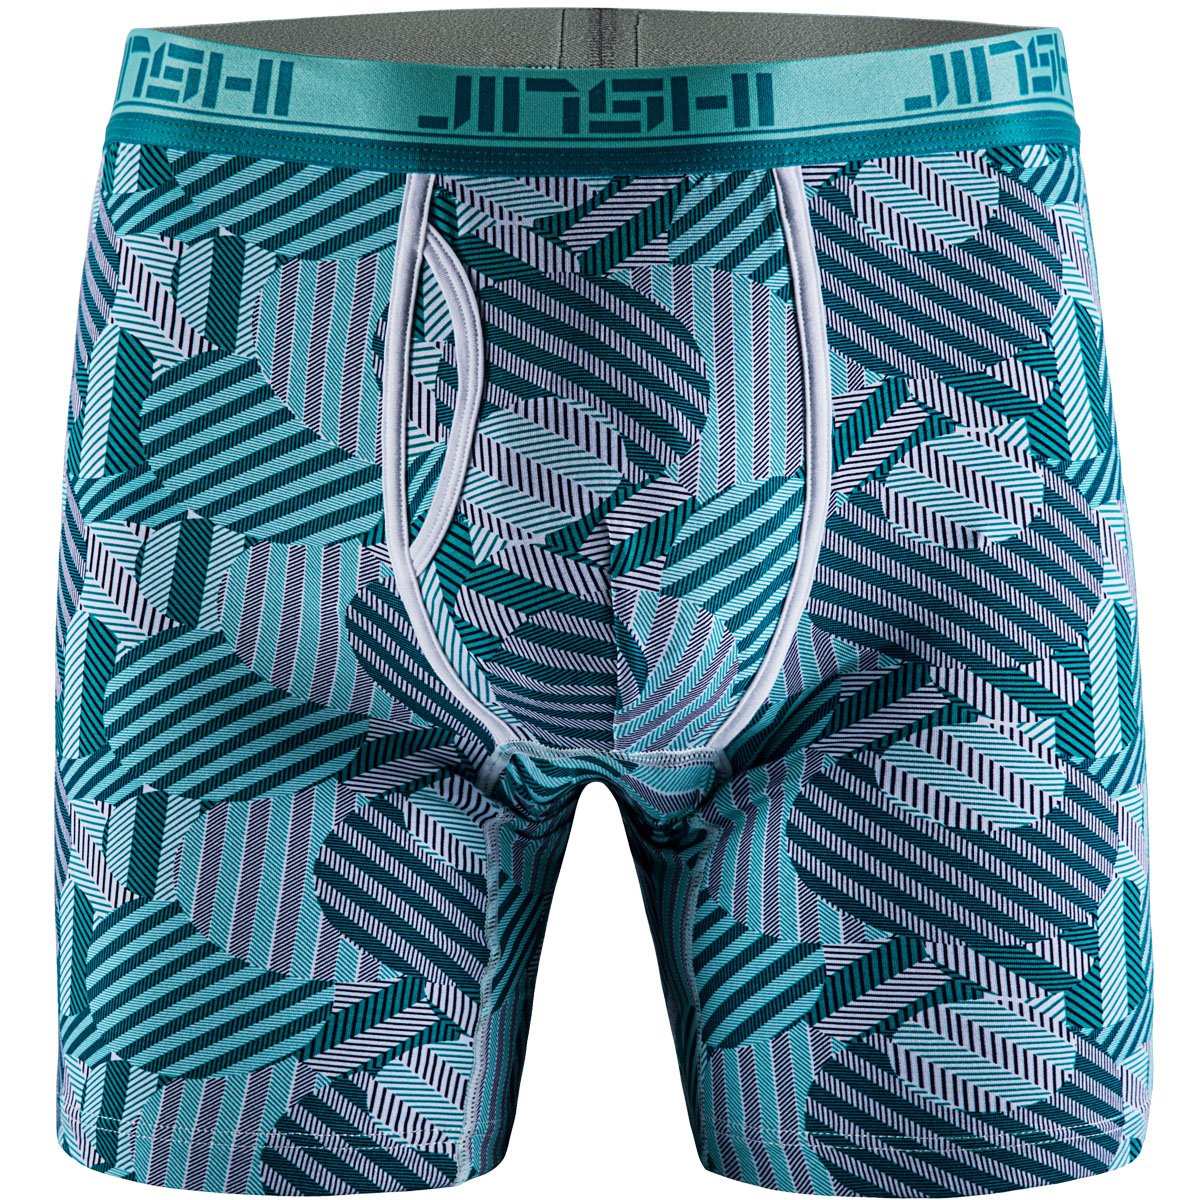 JINSHI Men's Underwear Bamboo Performance Long Boxer Briefs JINSHIYHS